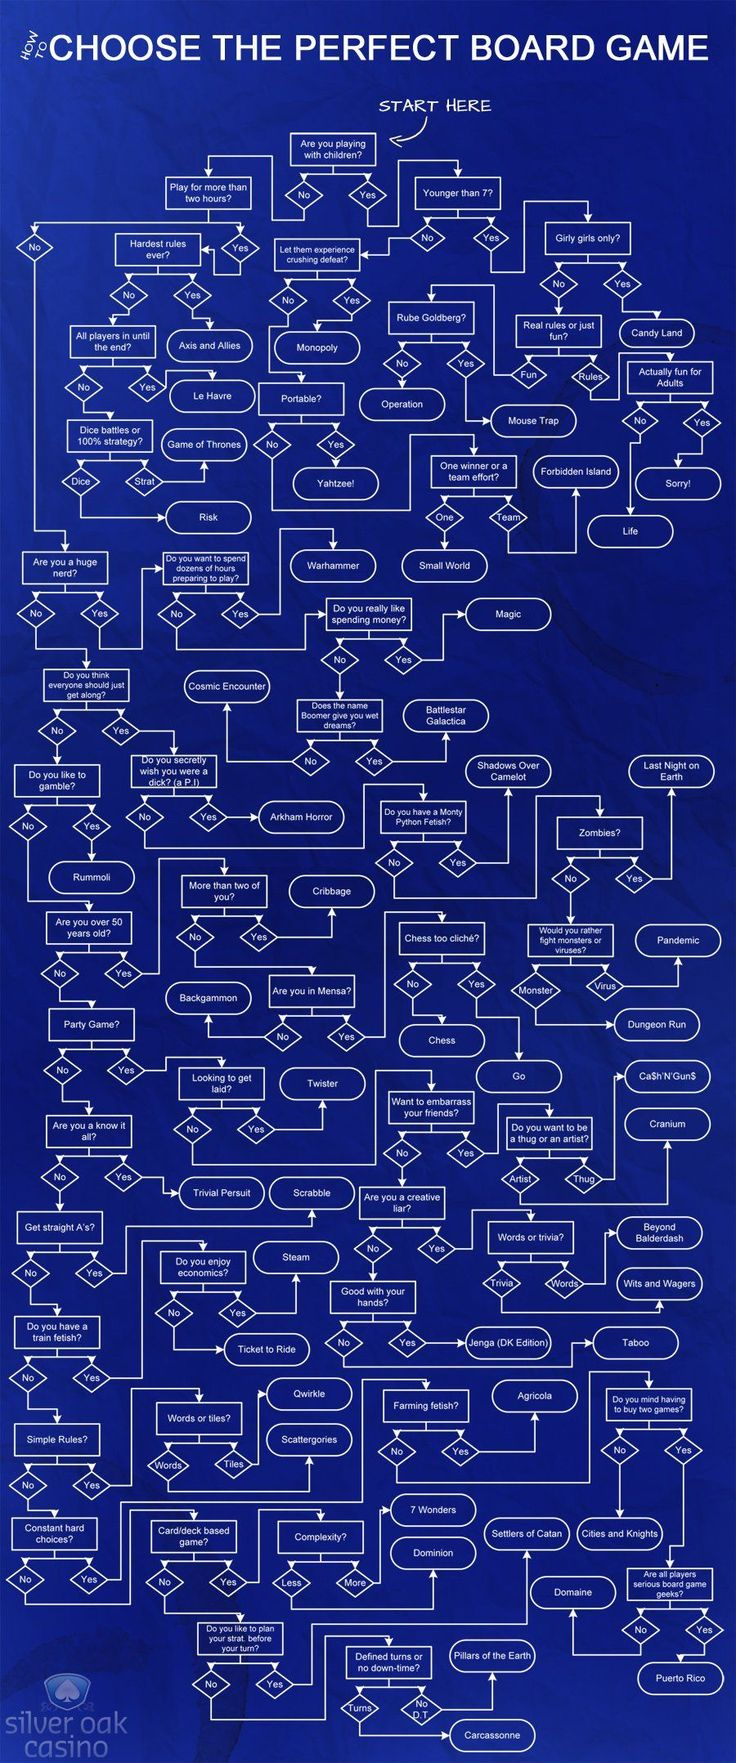 Sheldon s diy miata alignment page - Choose The Perfect Board Game Flow Chart